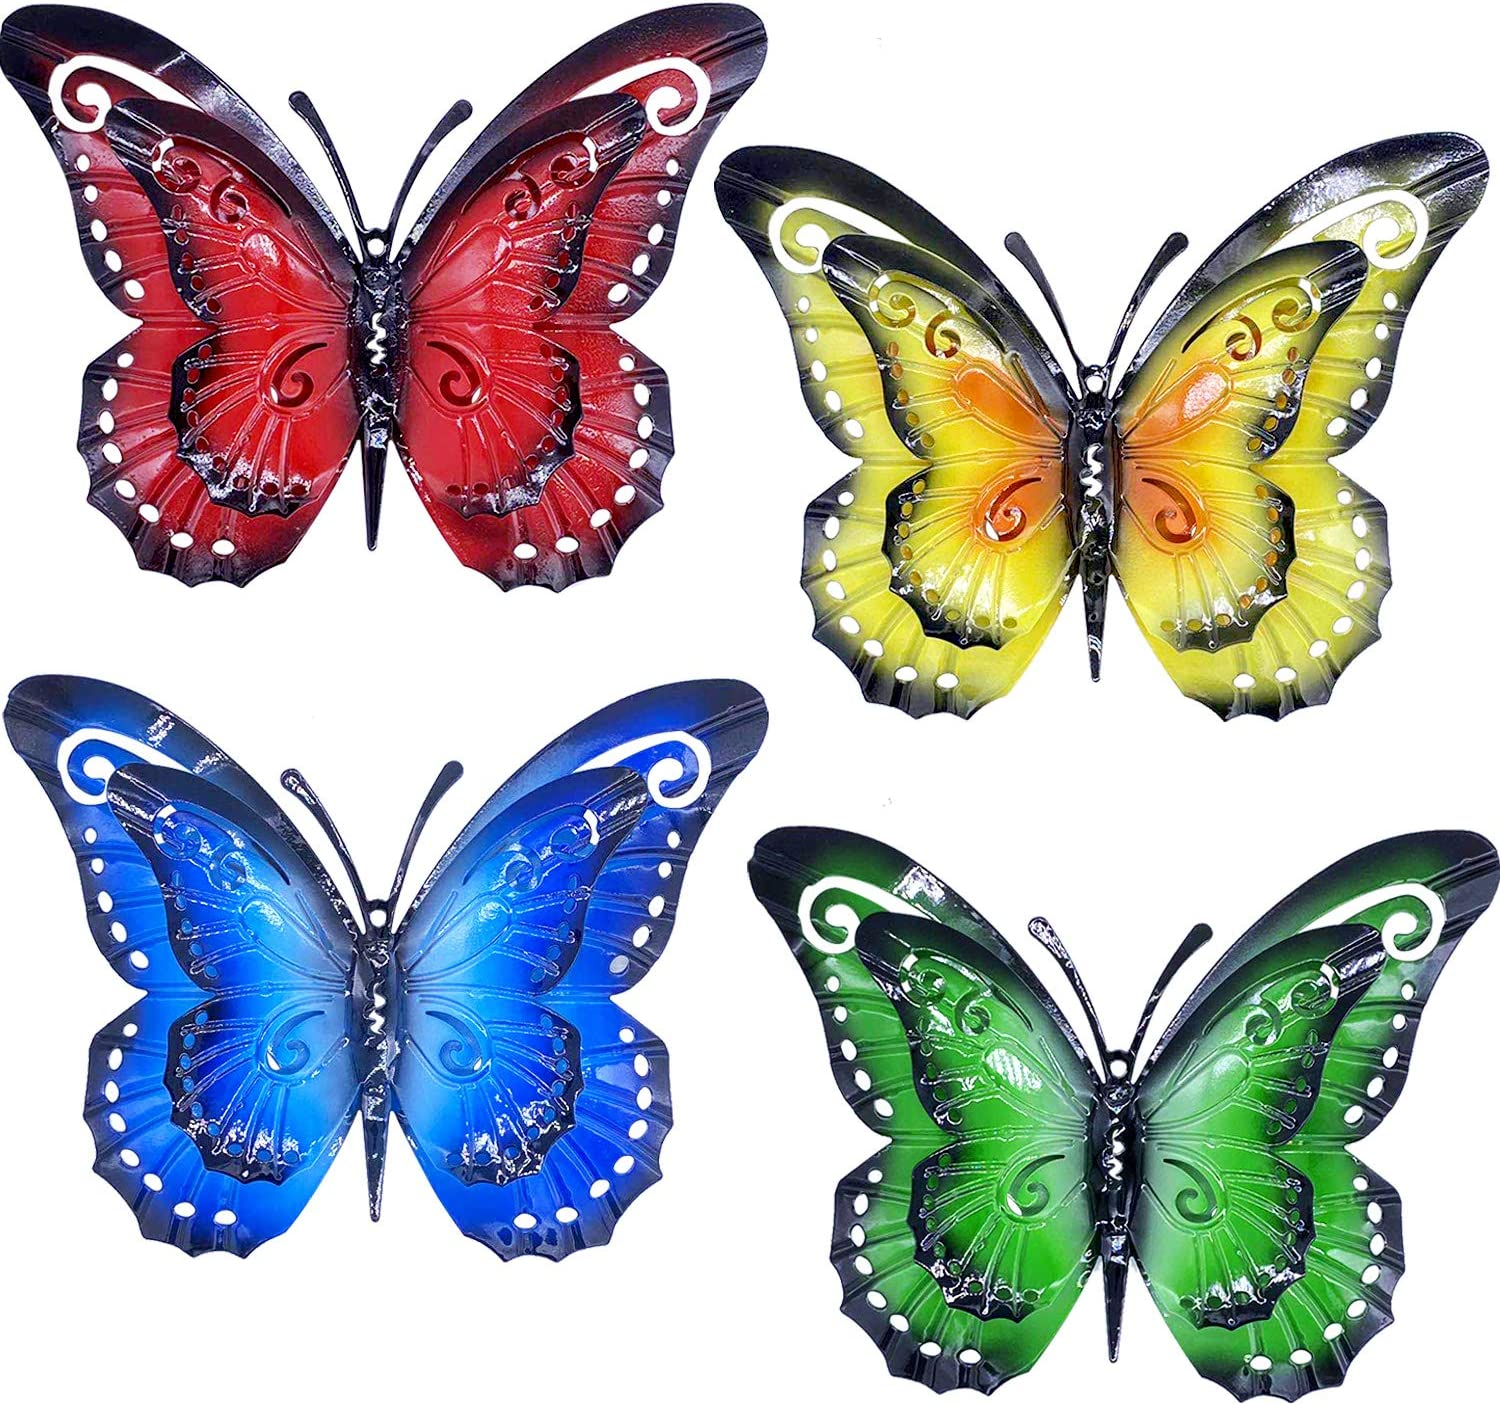 Large Metal Butterfly Wall Decor Outdoor - 4 Pack 9.5in Double Wings Butterflies Wall Sculpture Hanging Decor for Home Yard Patio Garden Decoration (4 Colors)